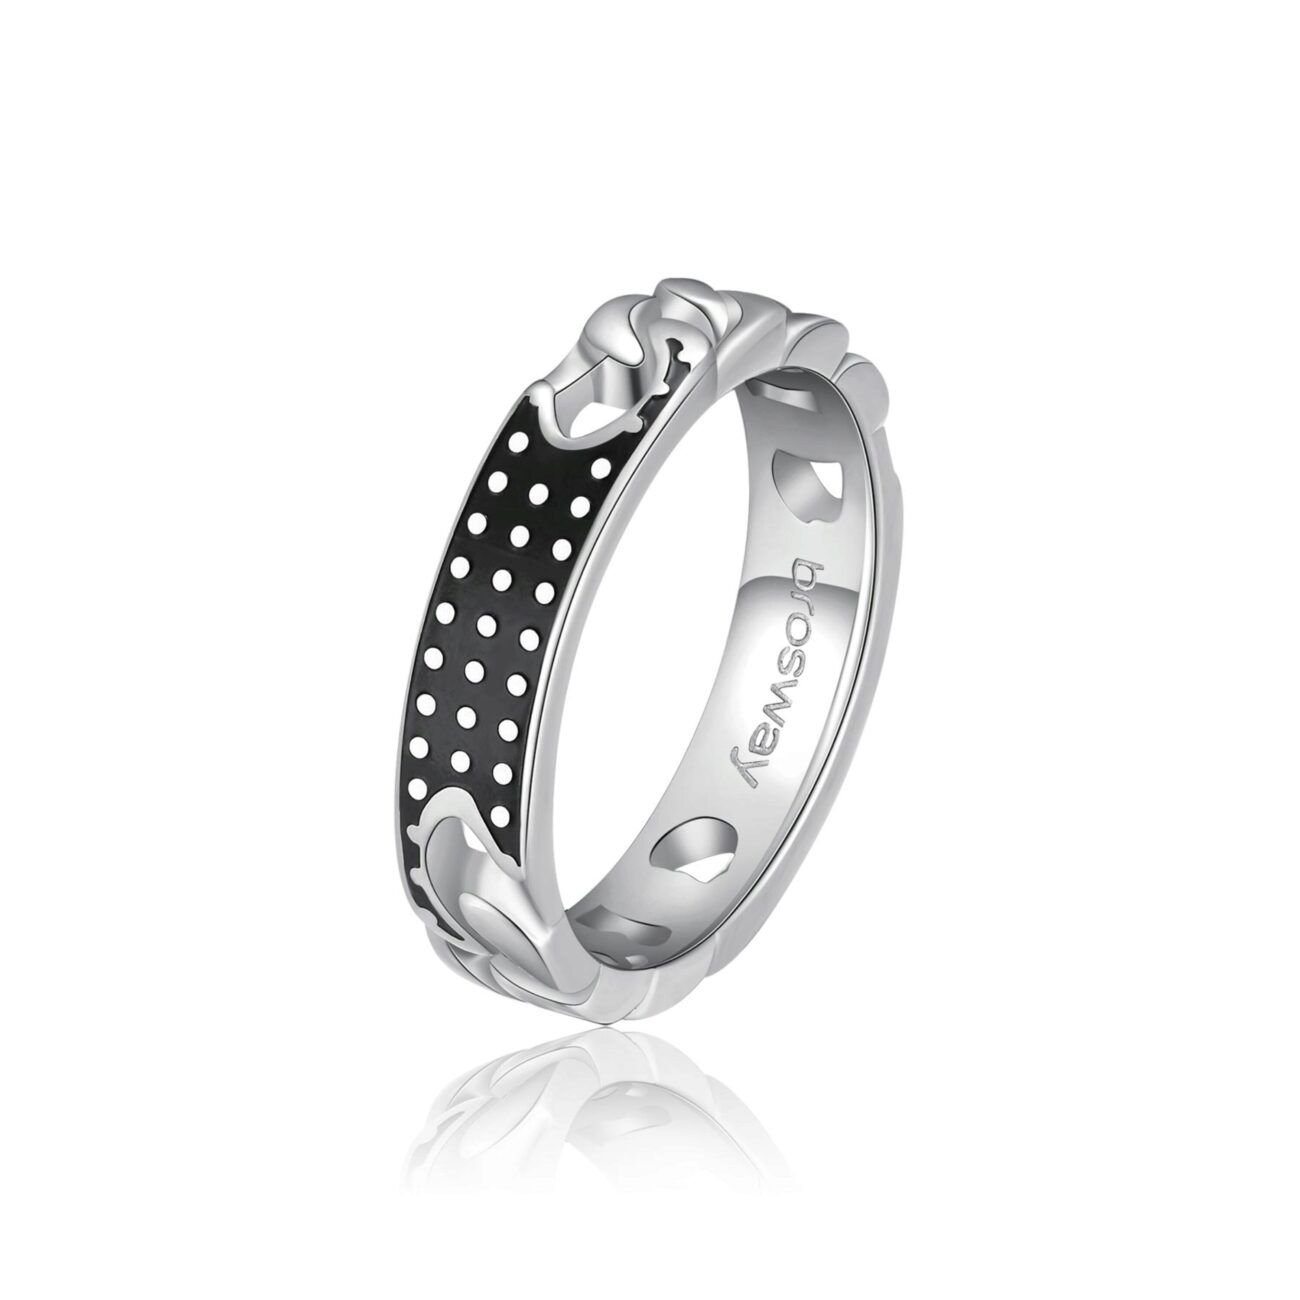 316L stainless steel ring with black enamel.